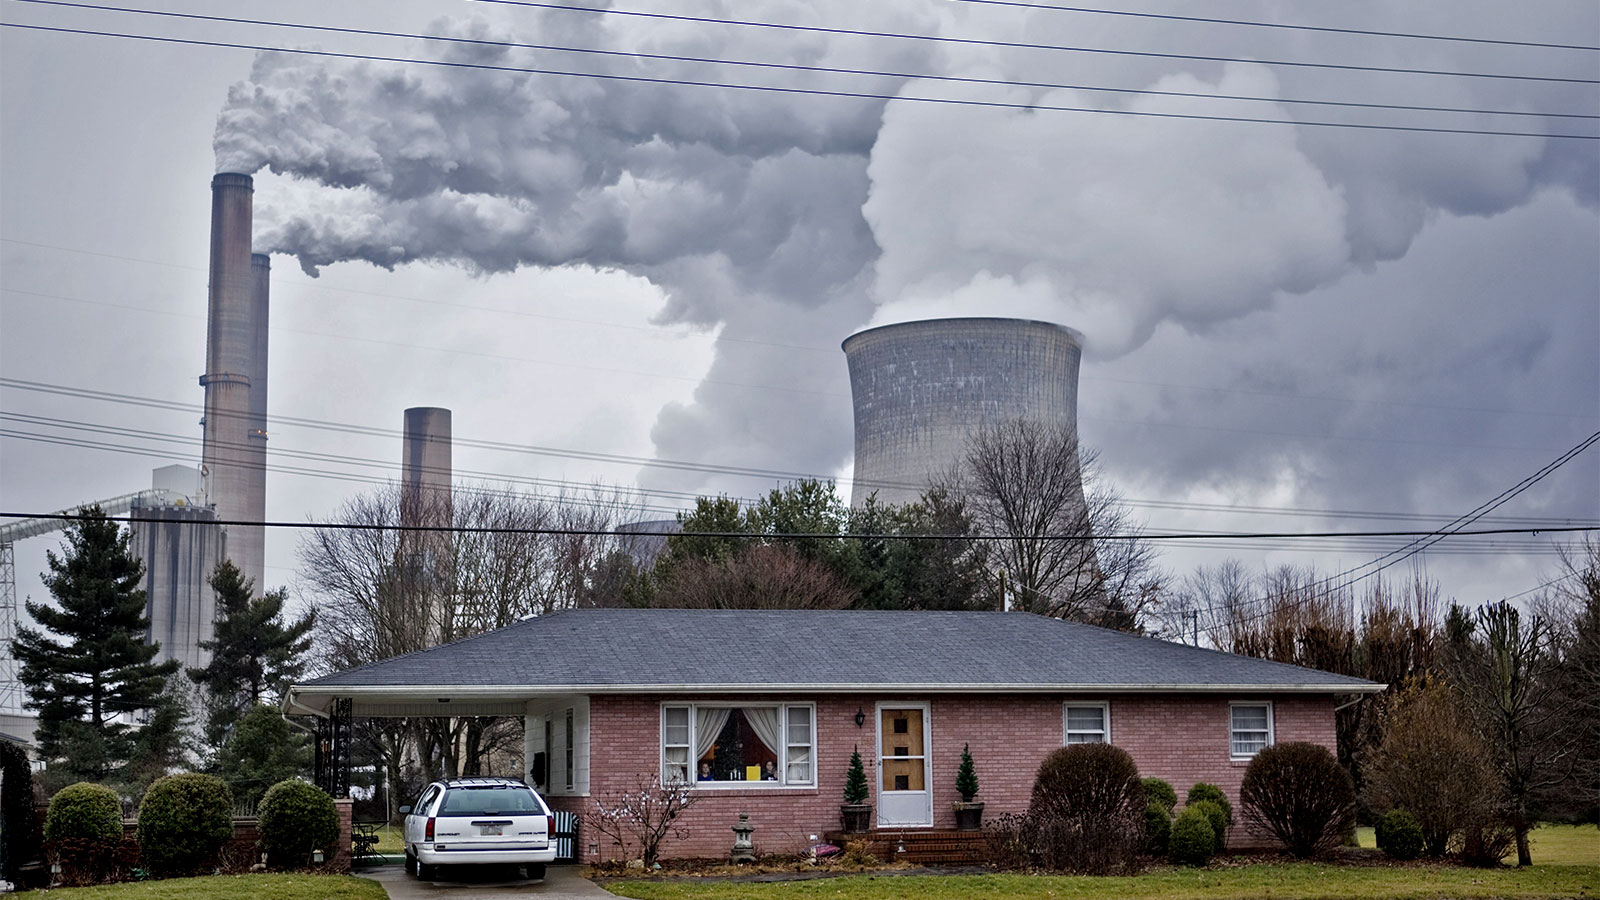 The stacks from the Gavin coal burning power plant dwarf a small nearby home in Cheshire, Ohio